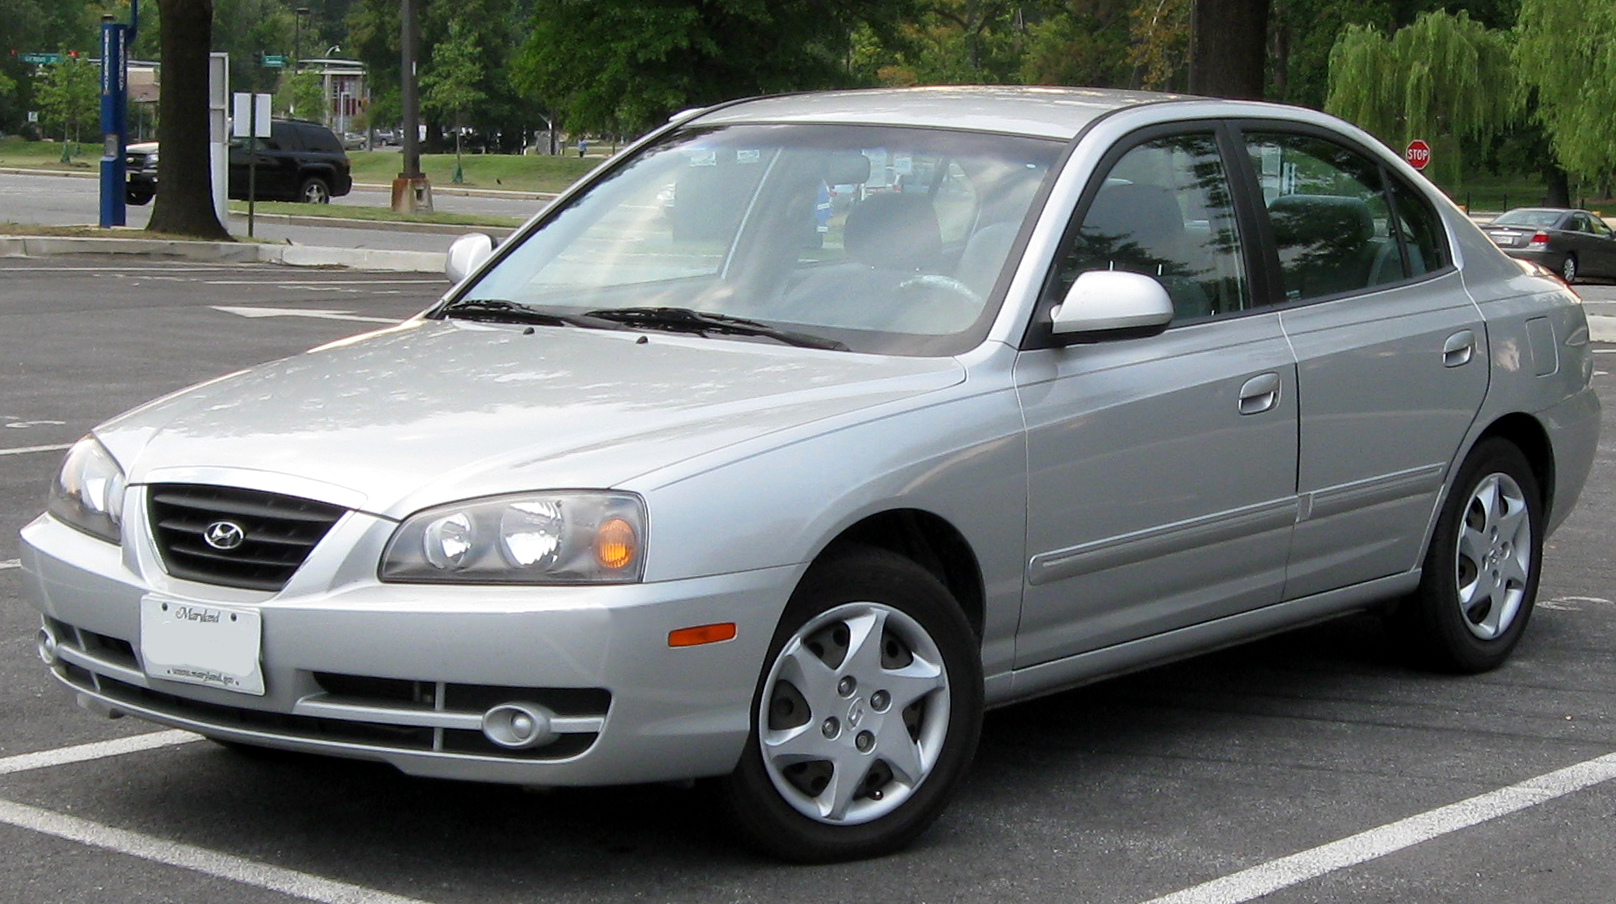 File:2004-2006 Hyundai Elantra GLS sedan -- 09-22-2010.jpg - Wikimedia Commons